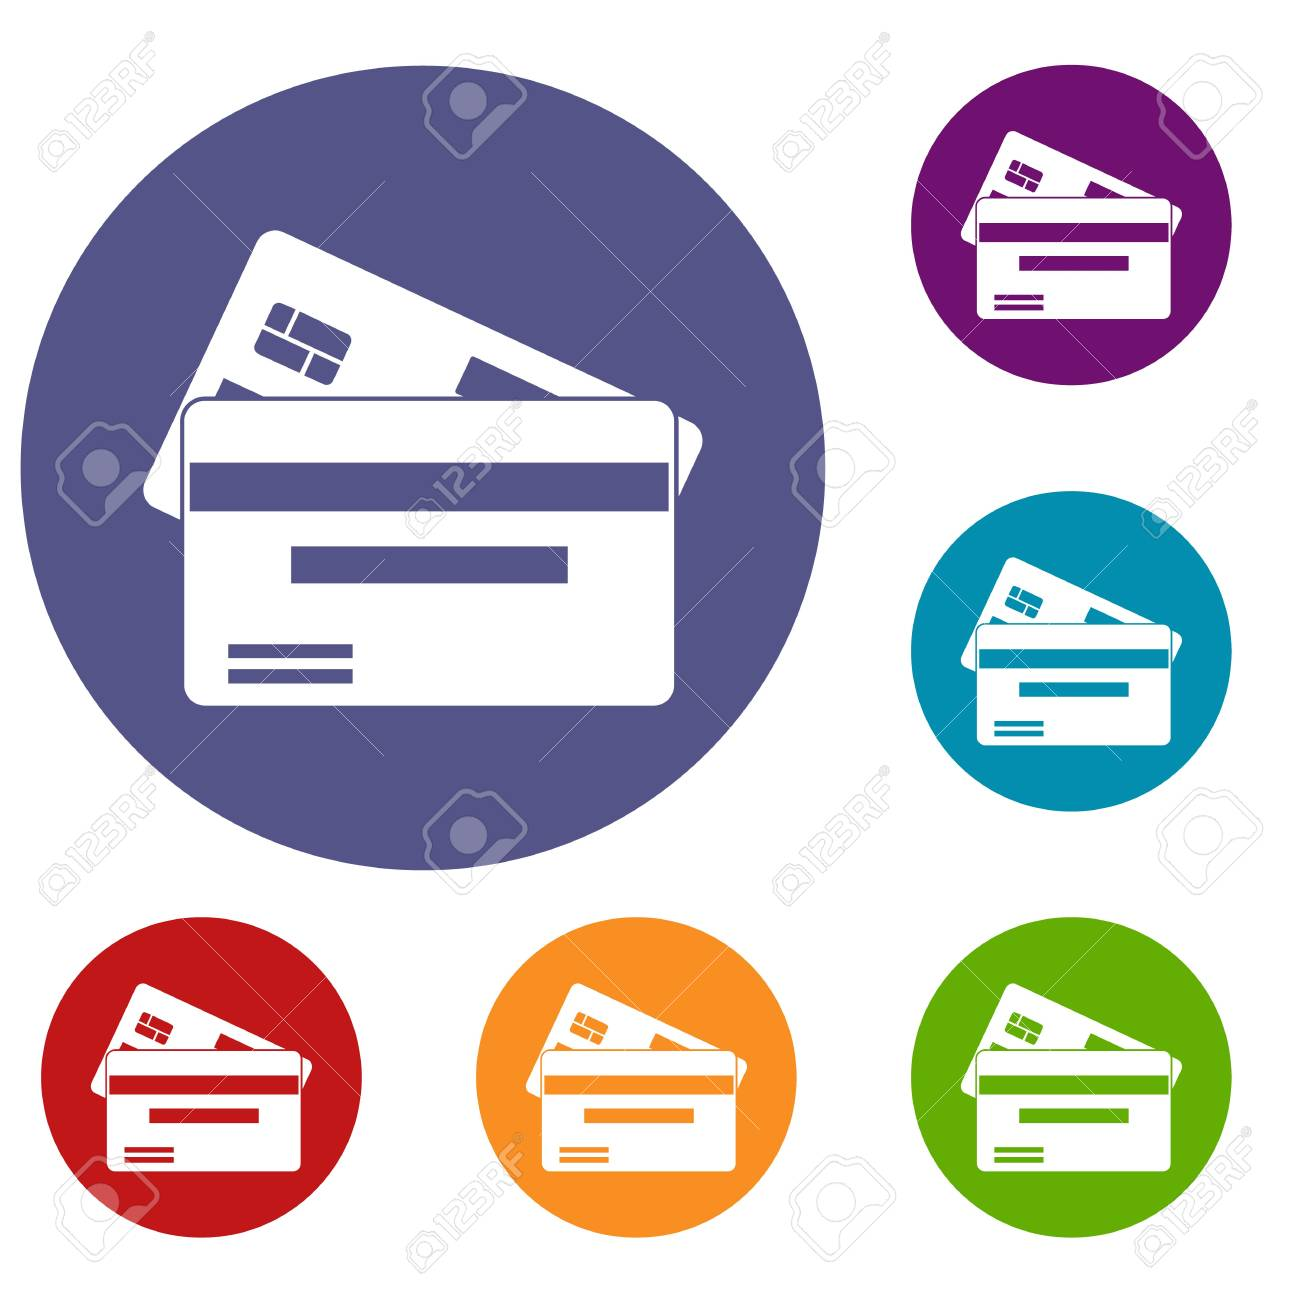 credit card icons set in flat circle reb blue and green color rh 123rf com credit card icons vector free credit card icons vector free download